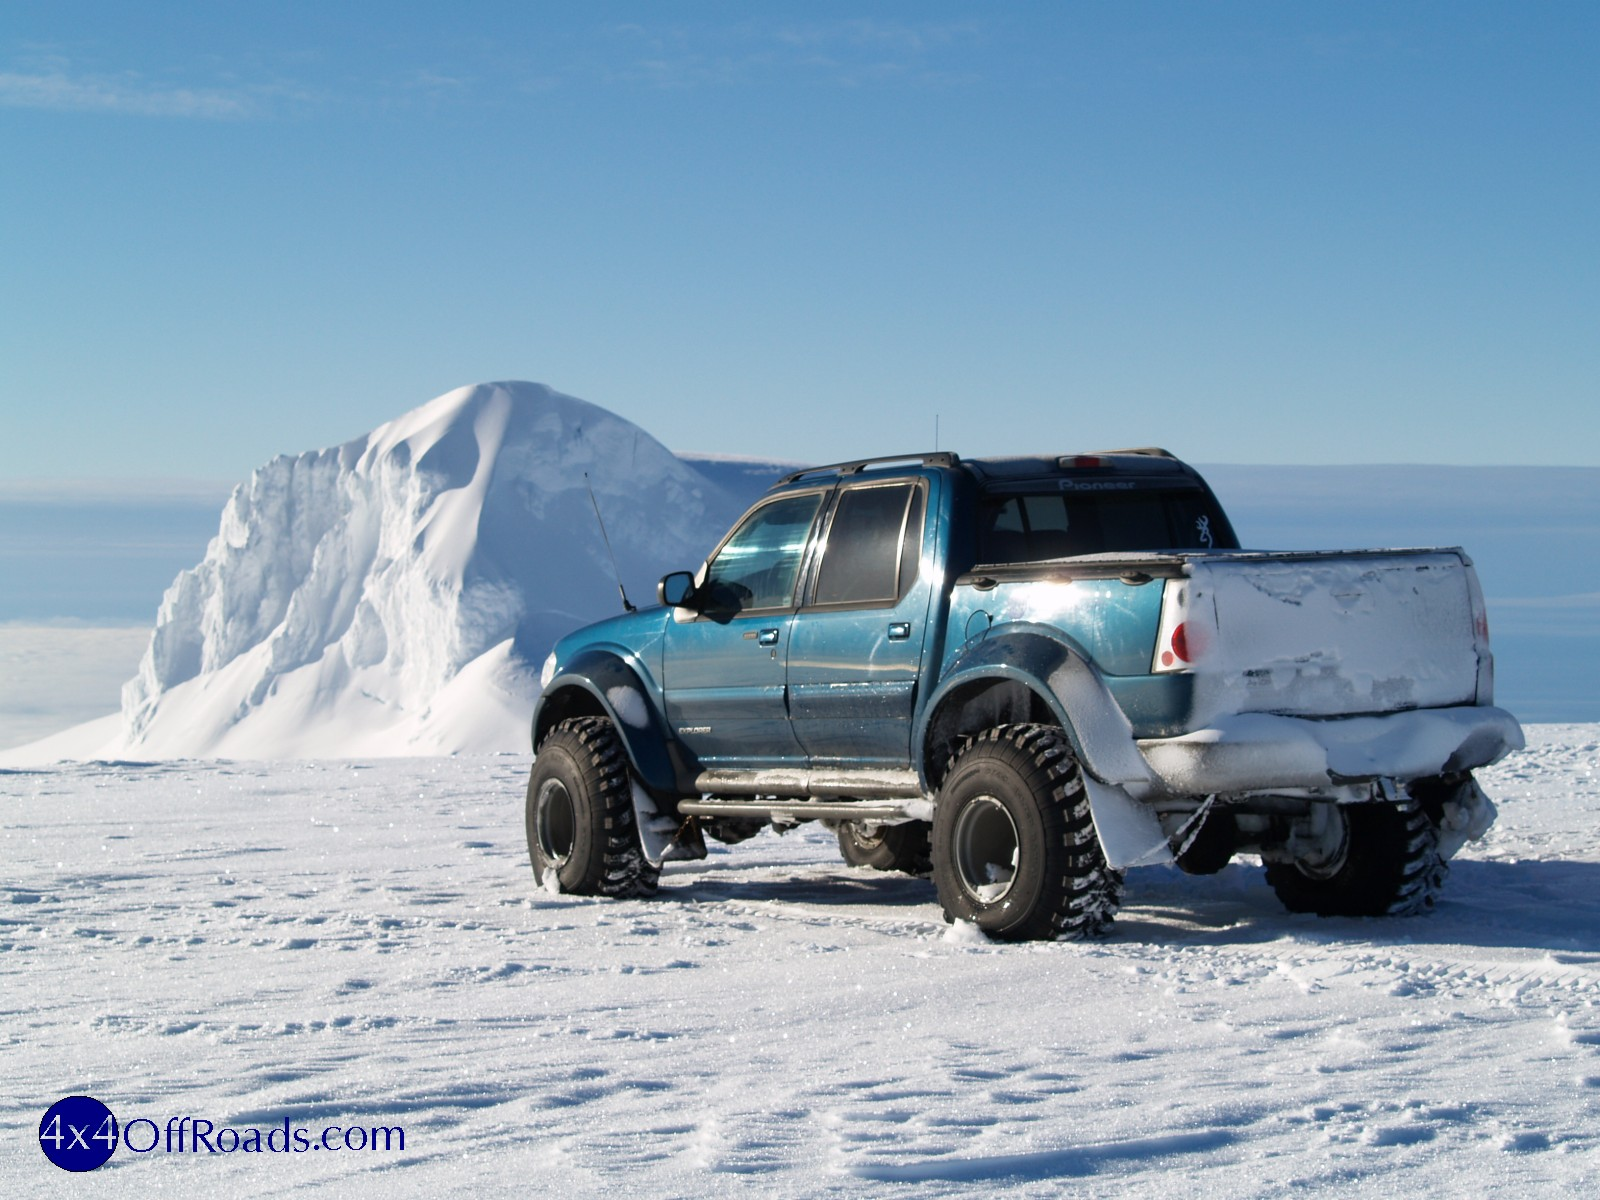 lifted 4x4 ford explorer sport trac >> 4x4 off roads